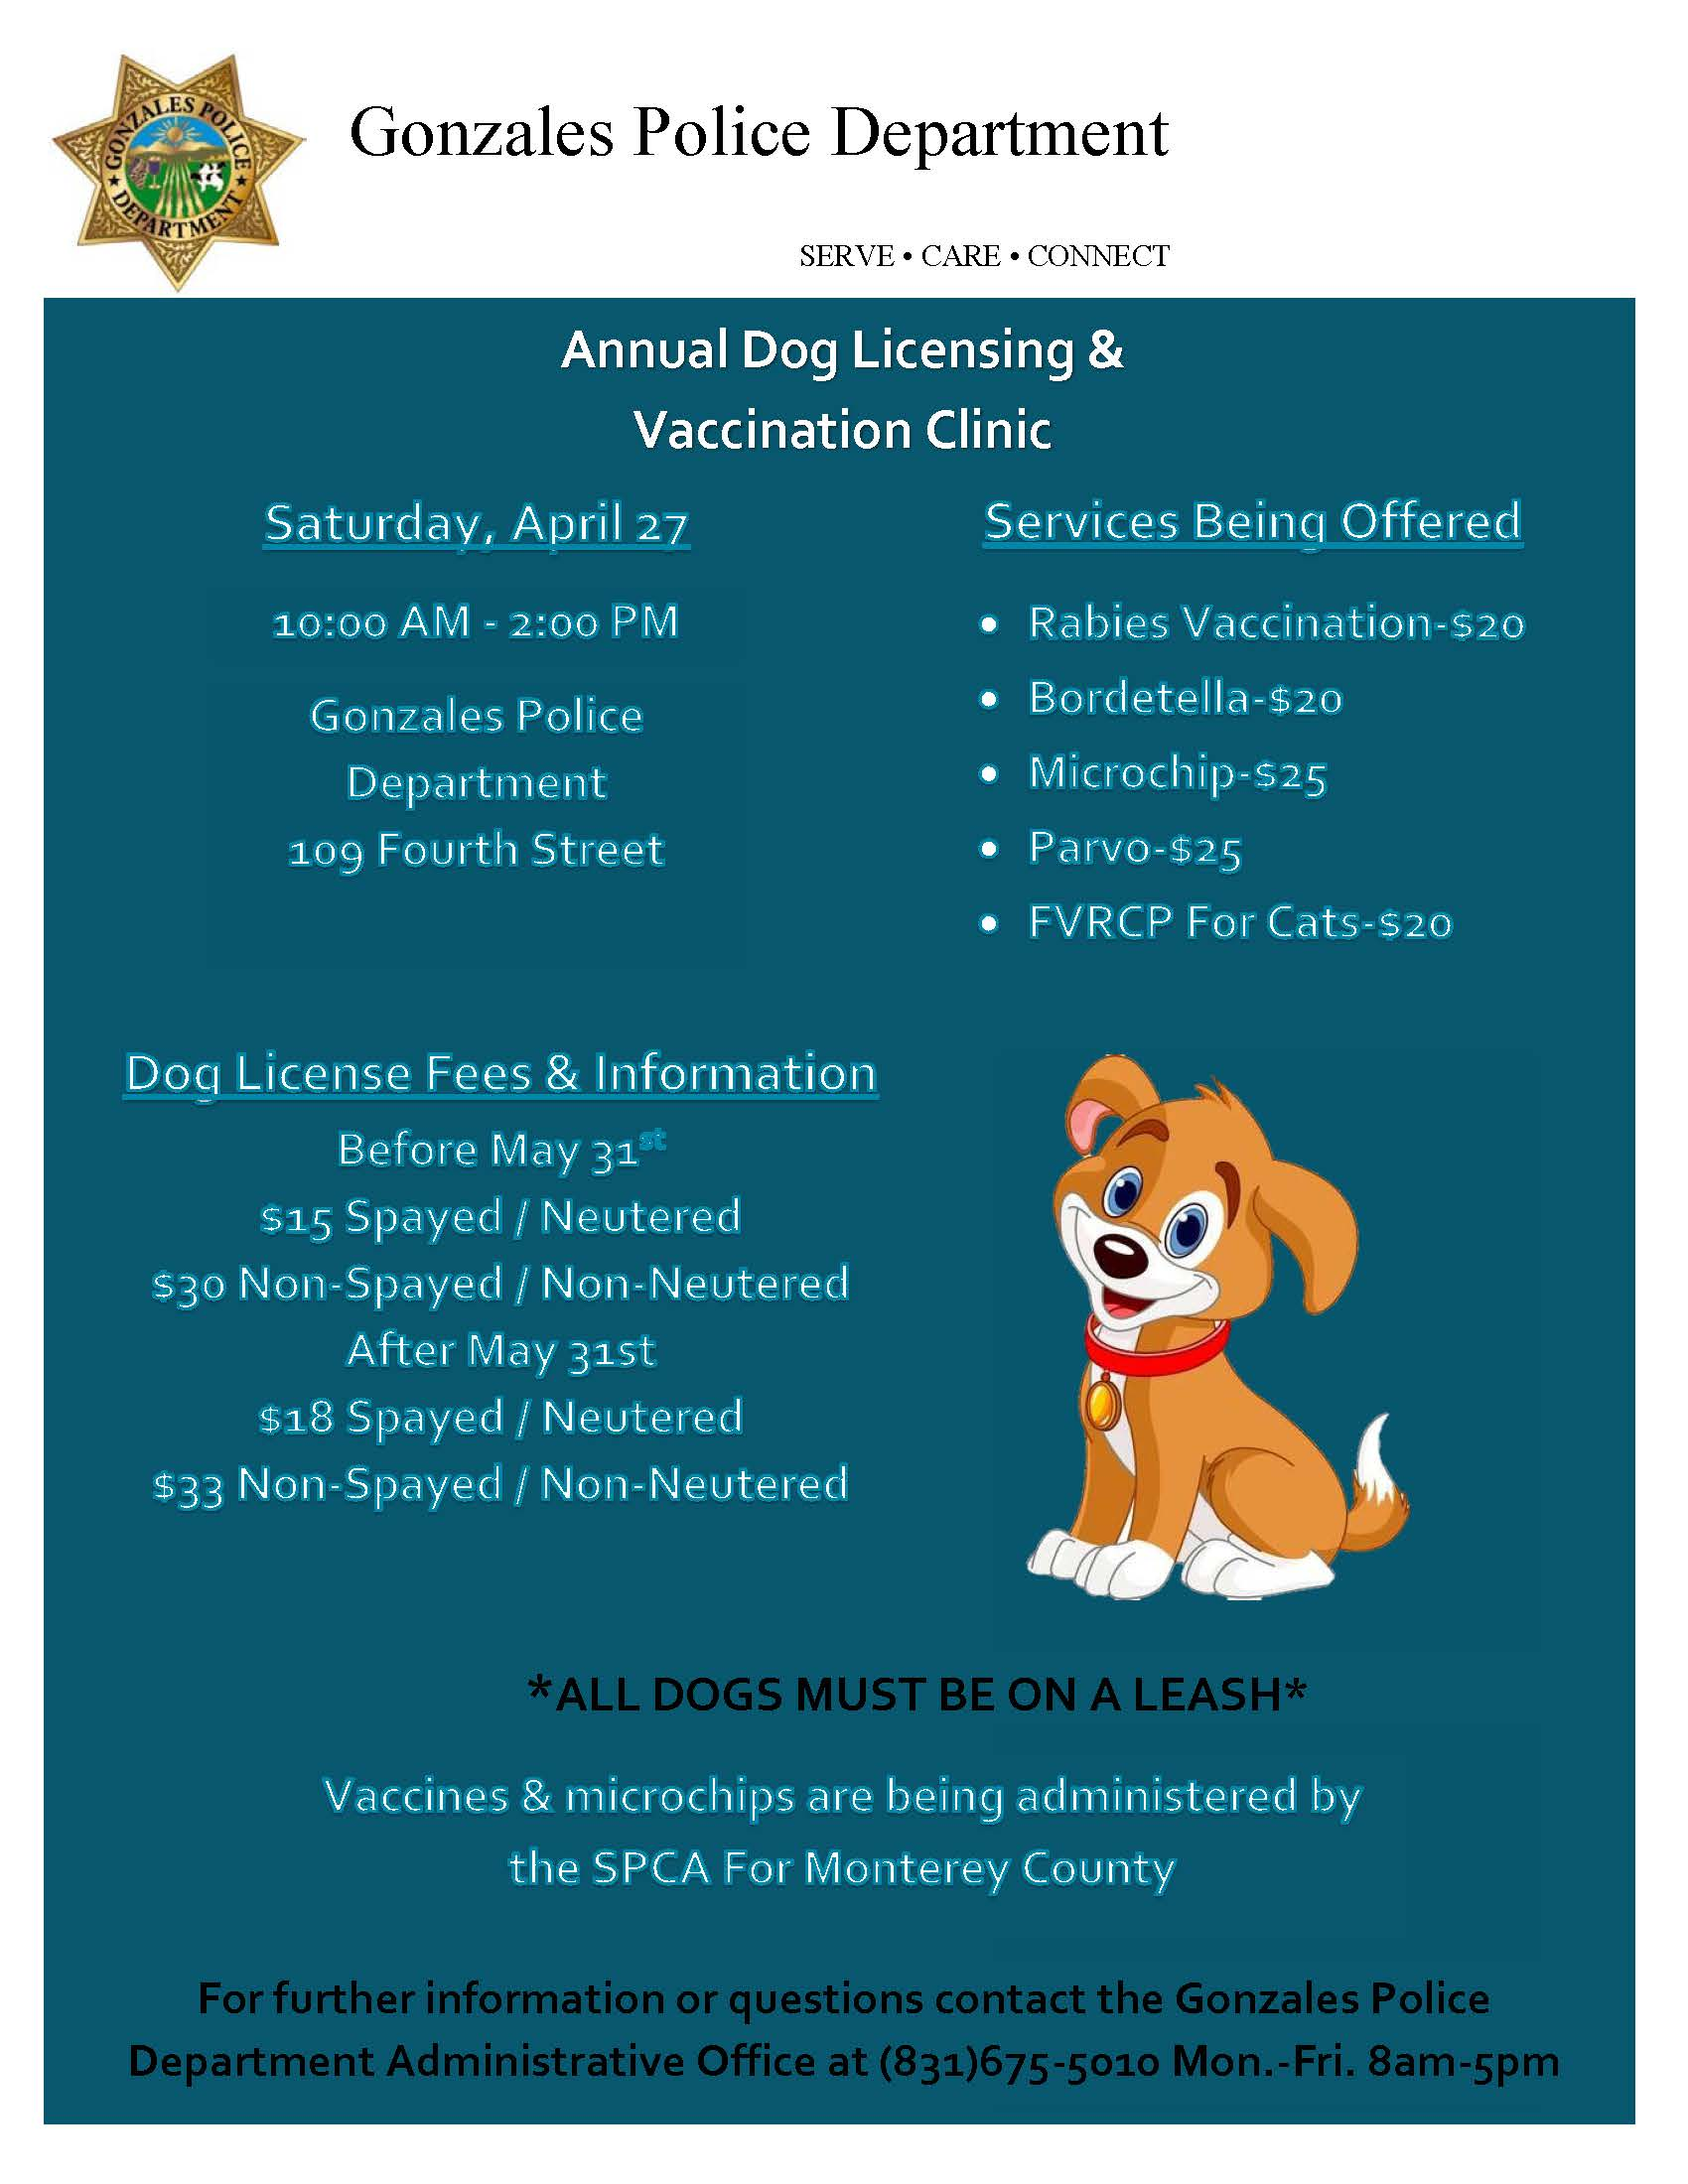 Annual Dog Licensing & Vaccination Clinic 2019